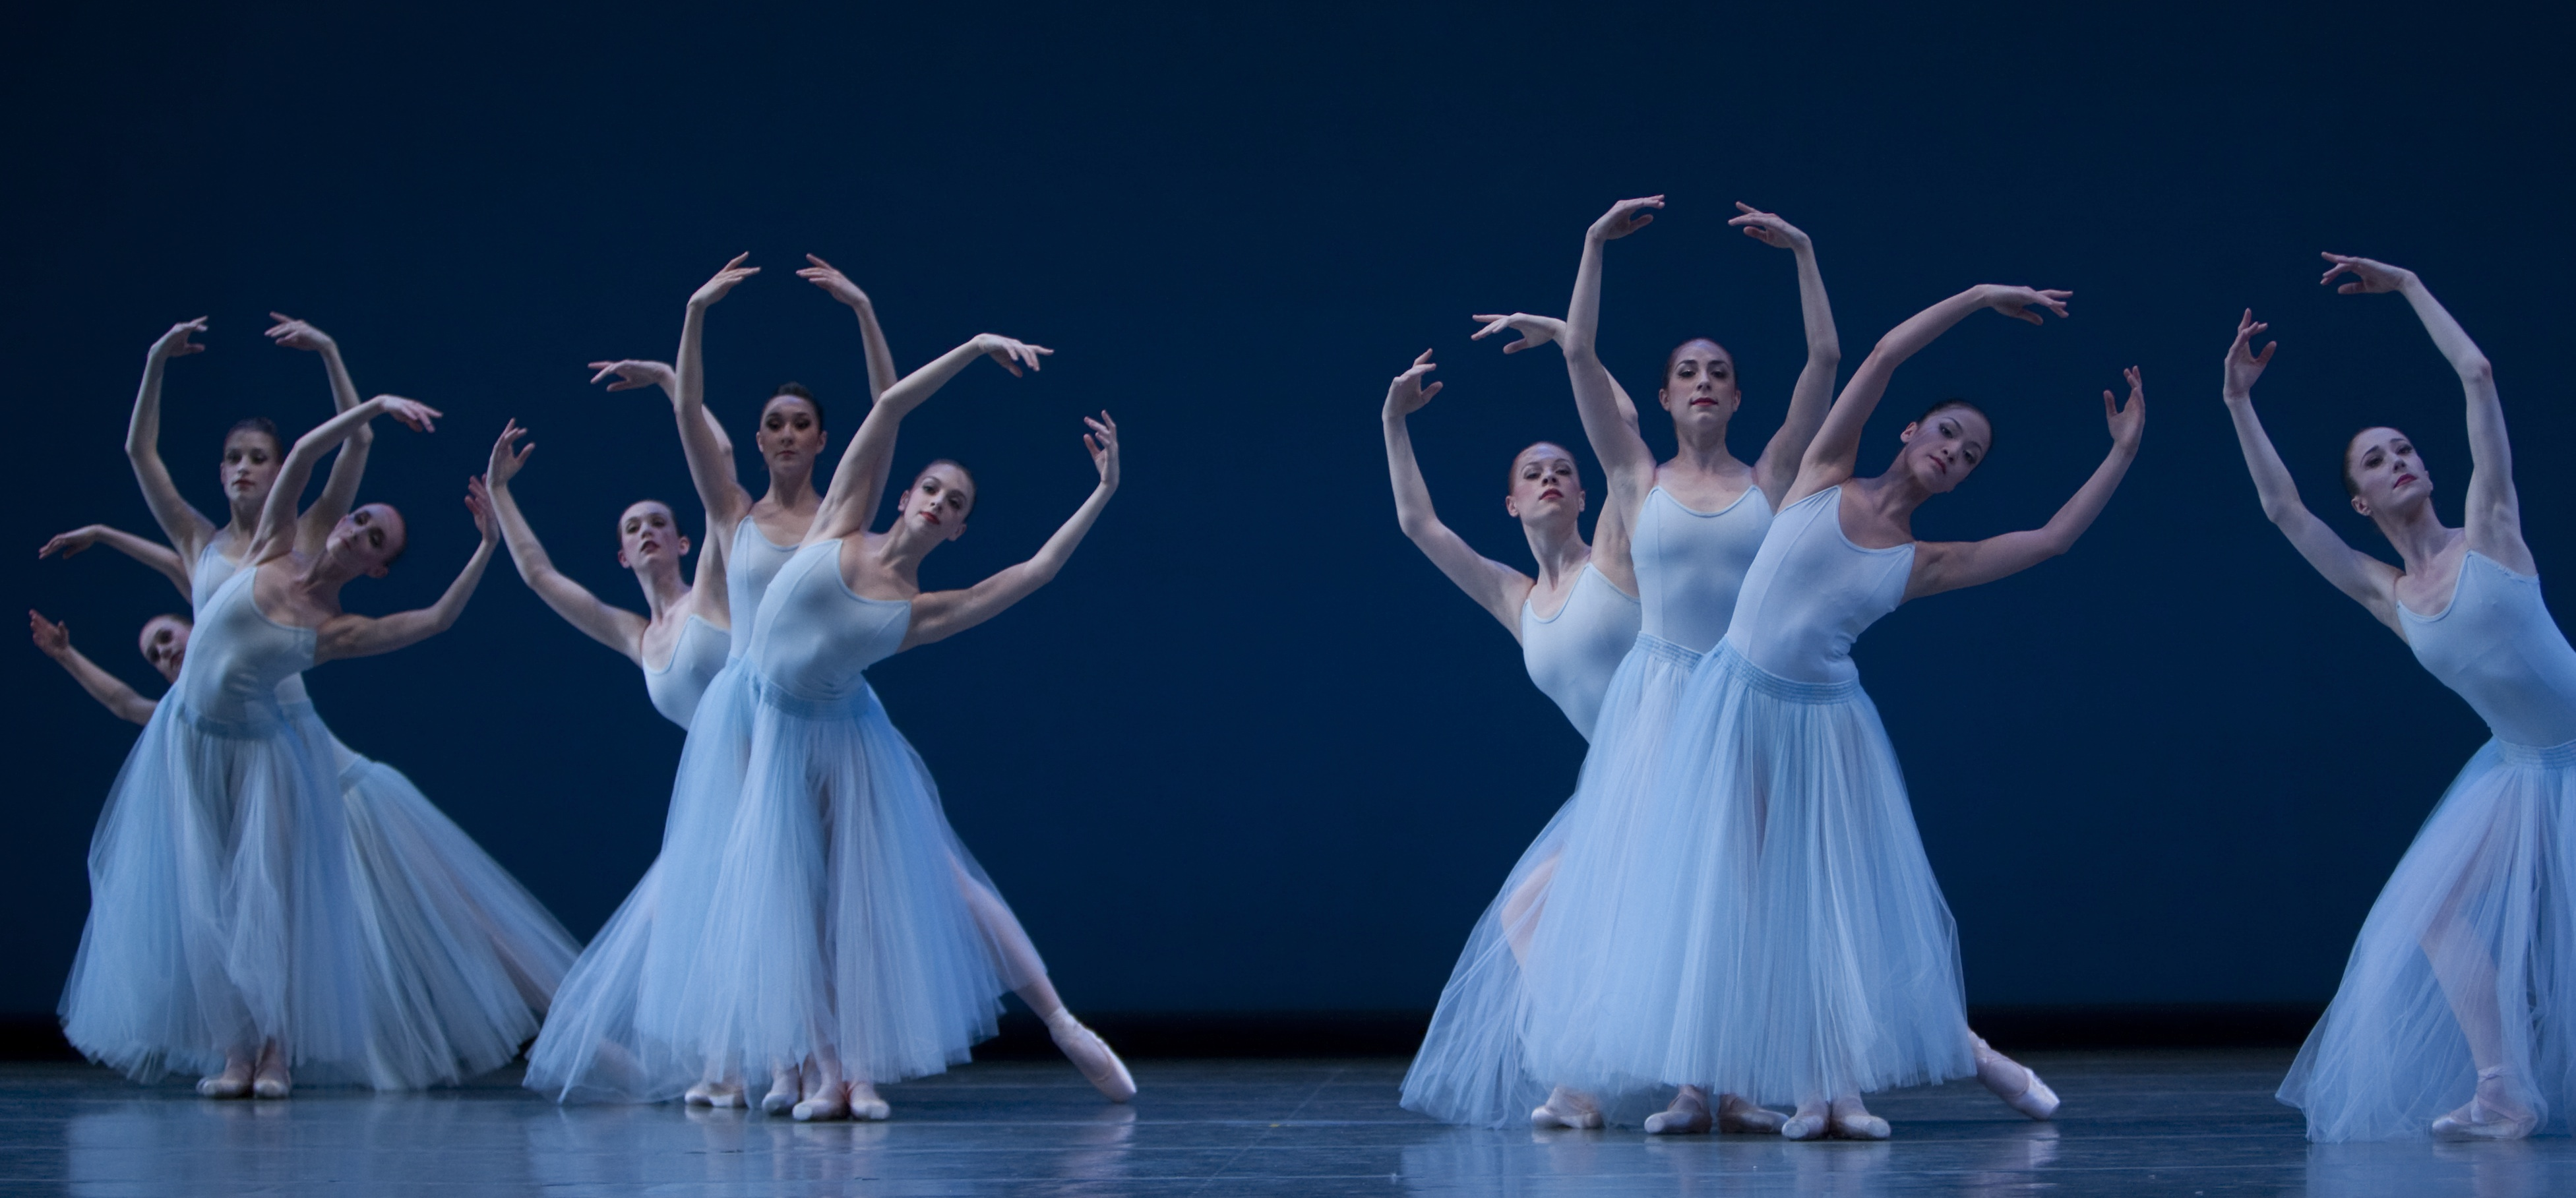 Pacific Northwest Ballet in Serenade © The Balanchine Trust, photo © Angela Sterling